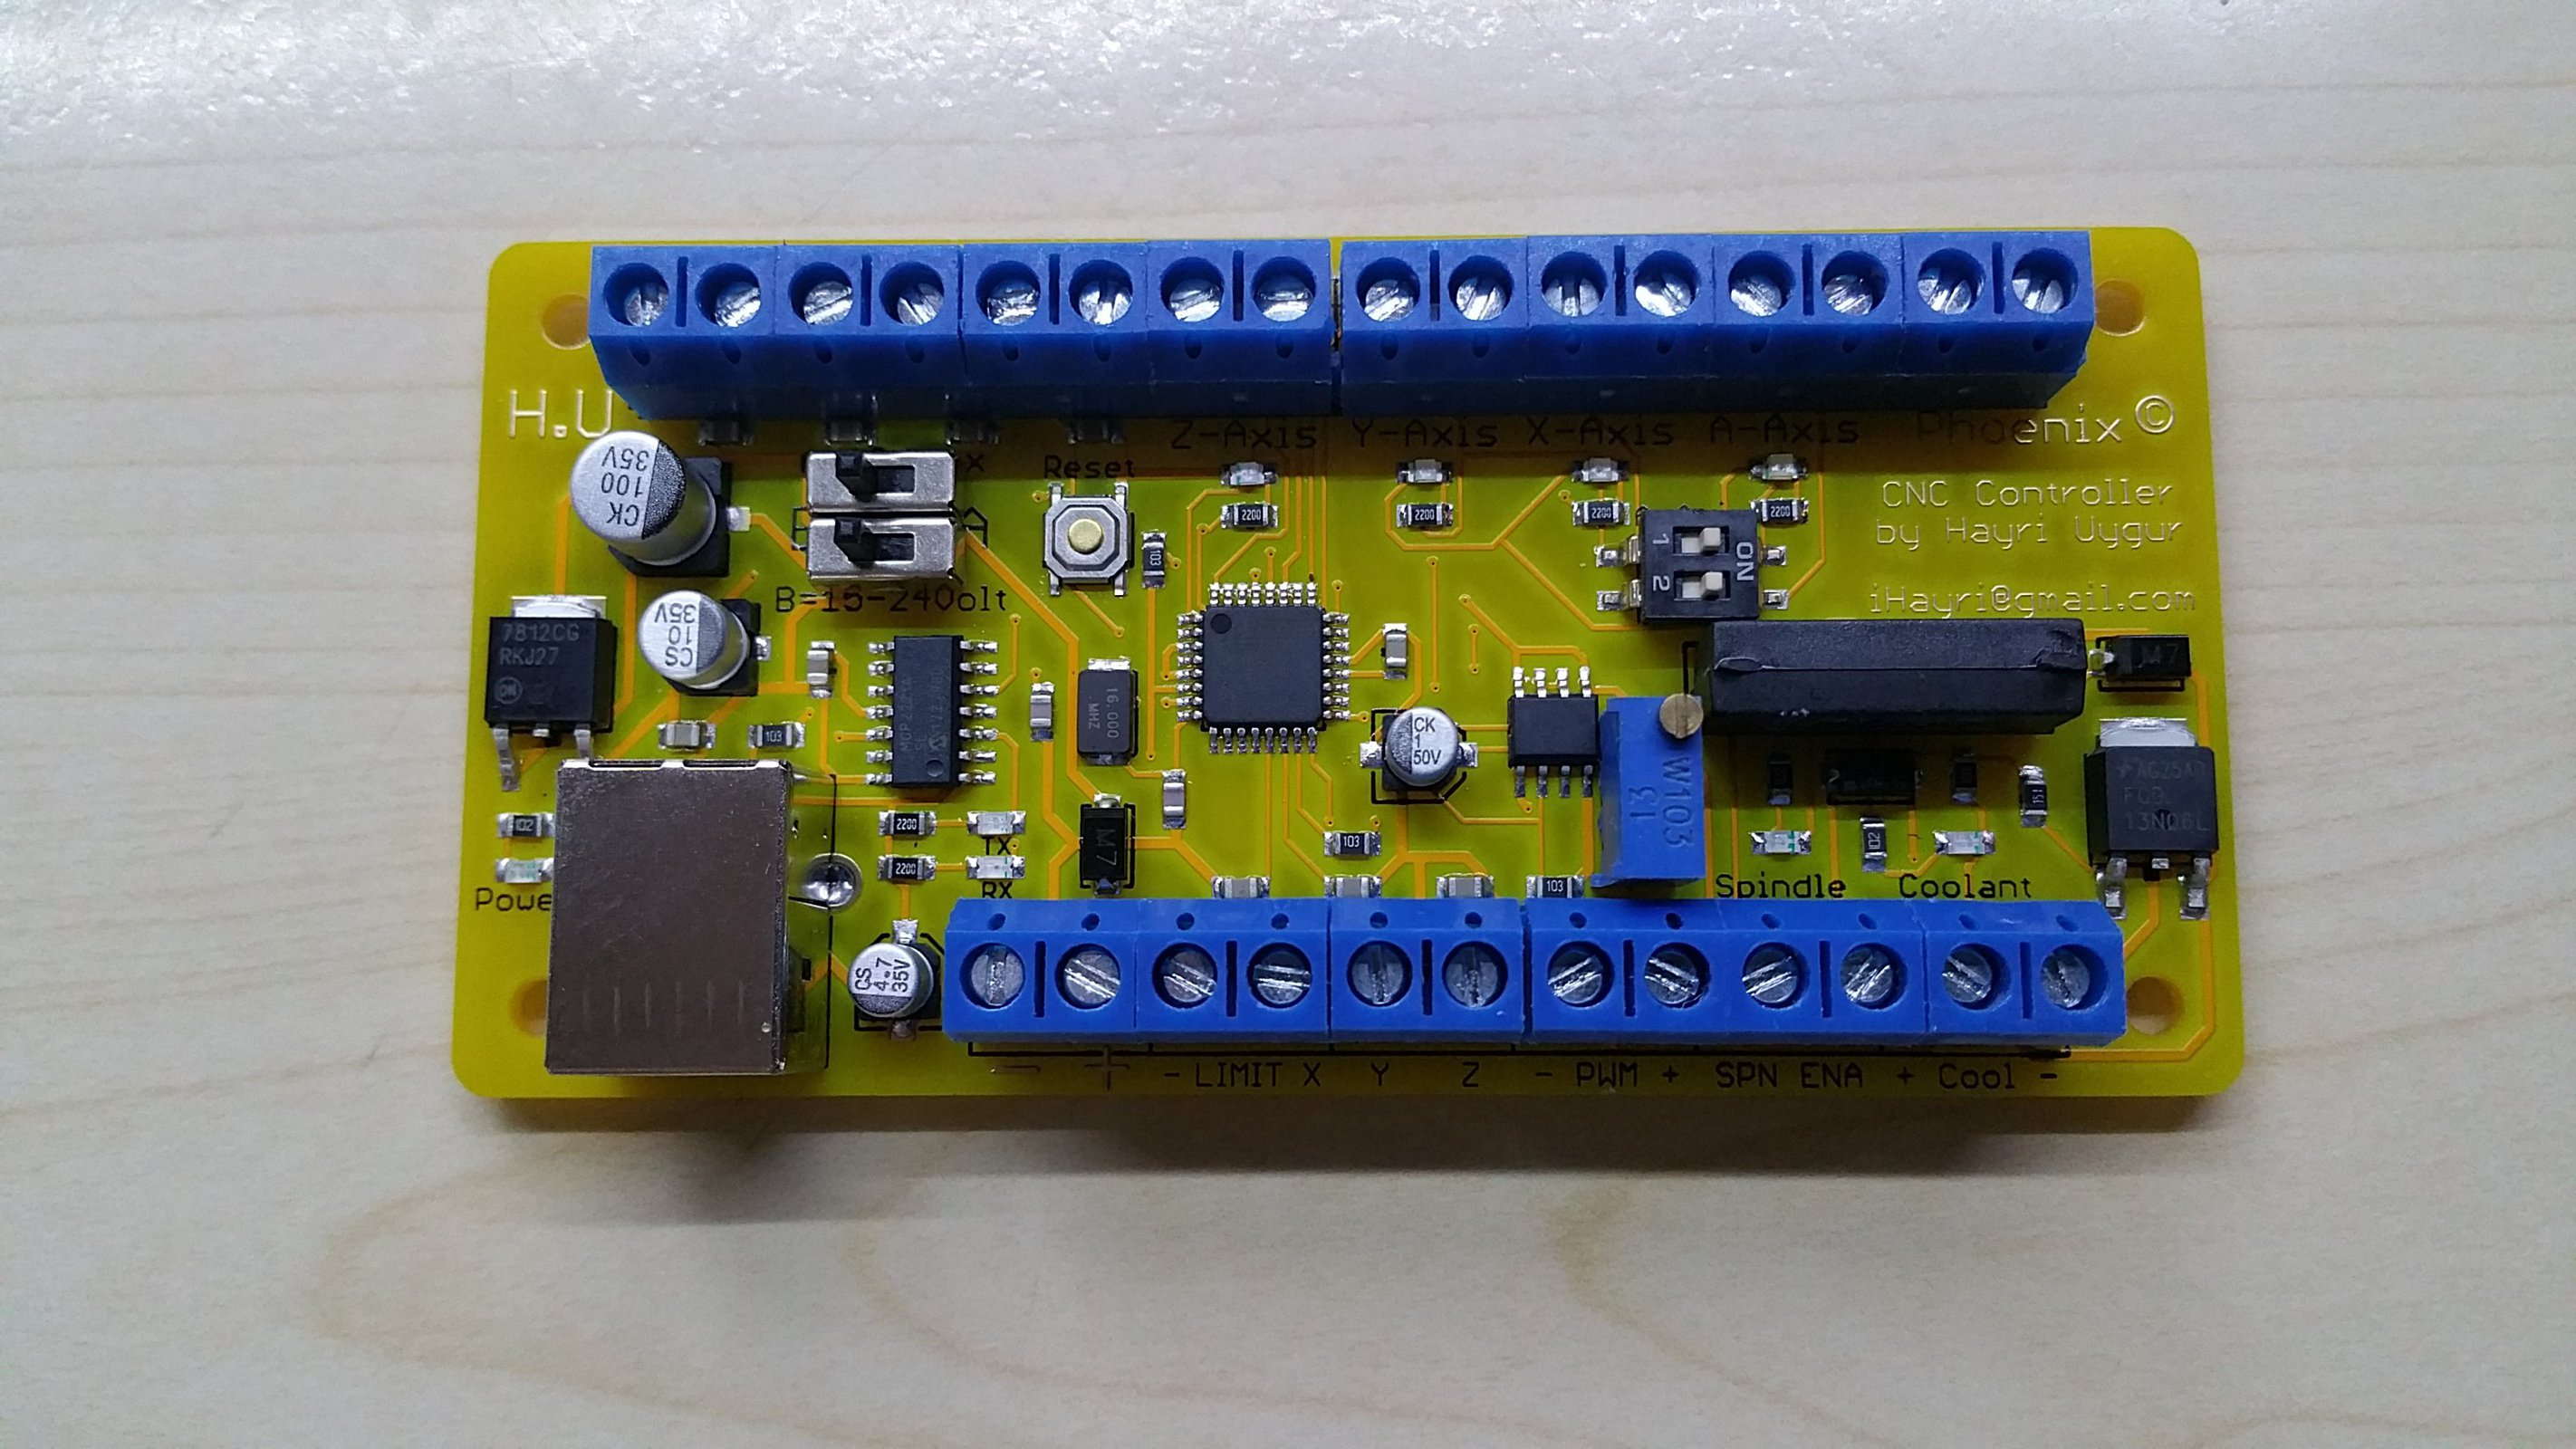 Phoenix Usb Cnc Controller With Pwm Output From Wiring Diagram 2